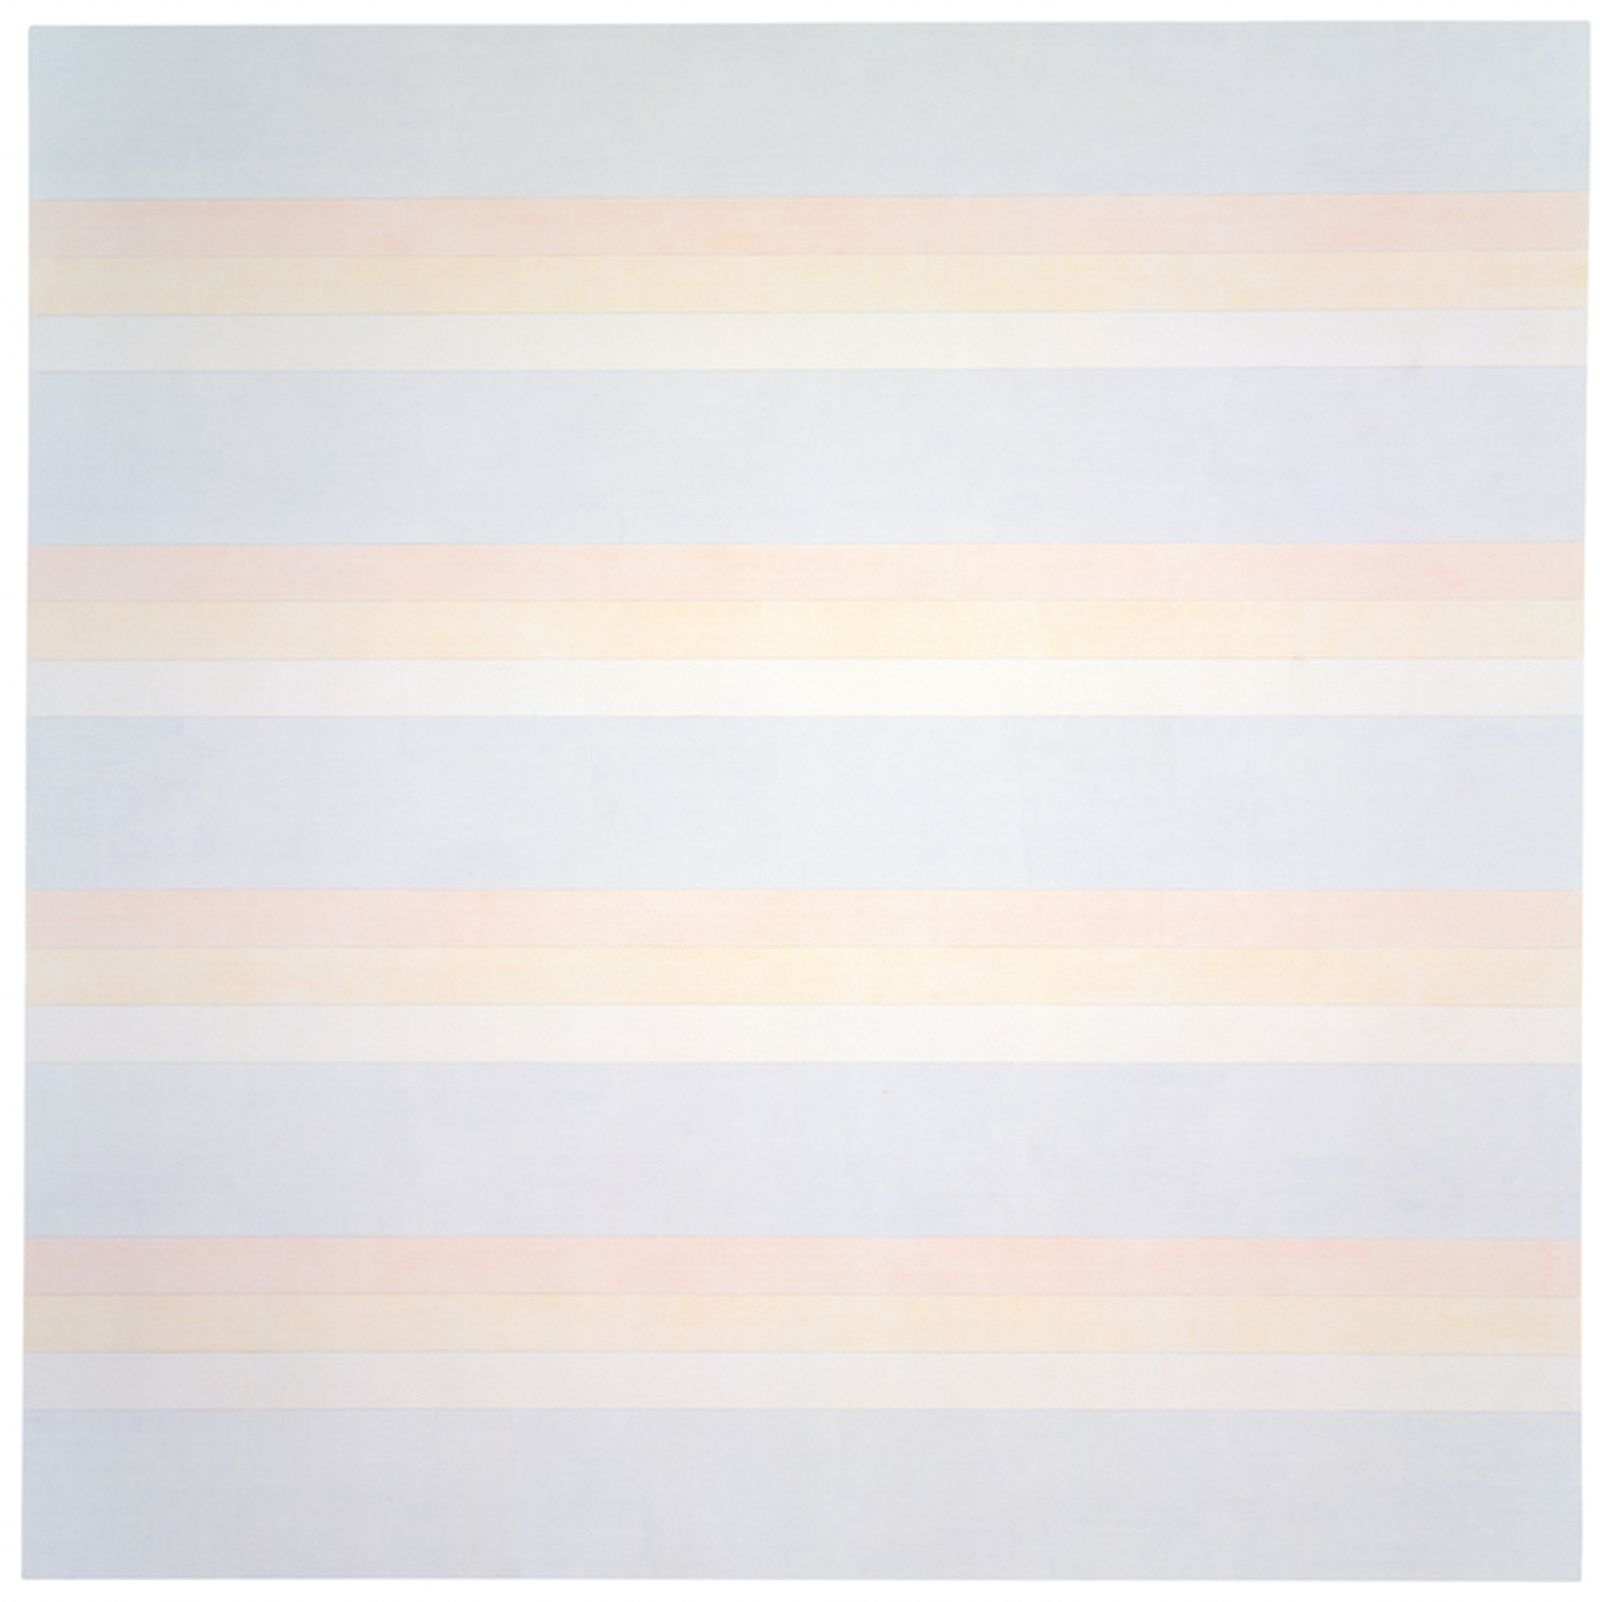 Painting Untitled #2, by Agnes Martin